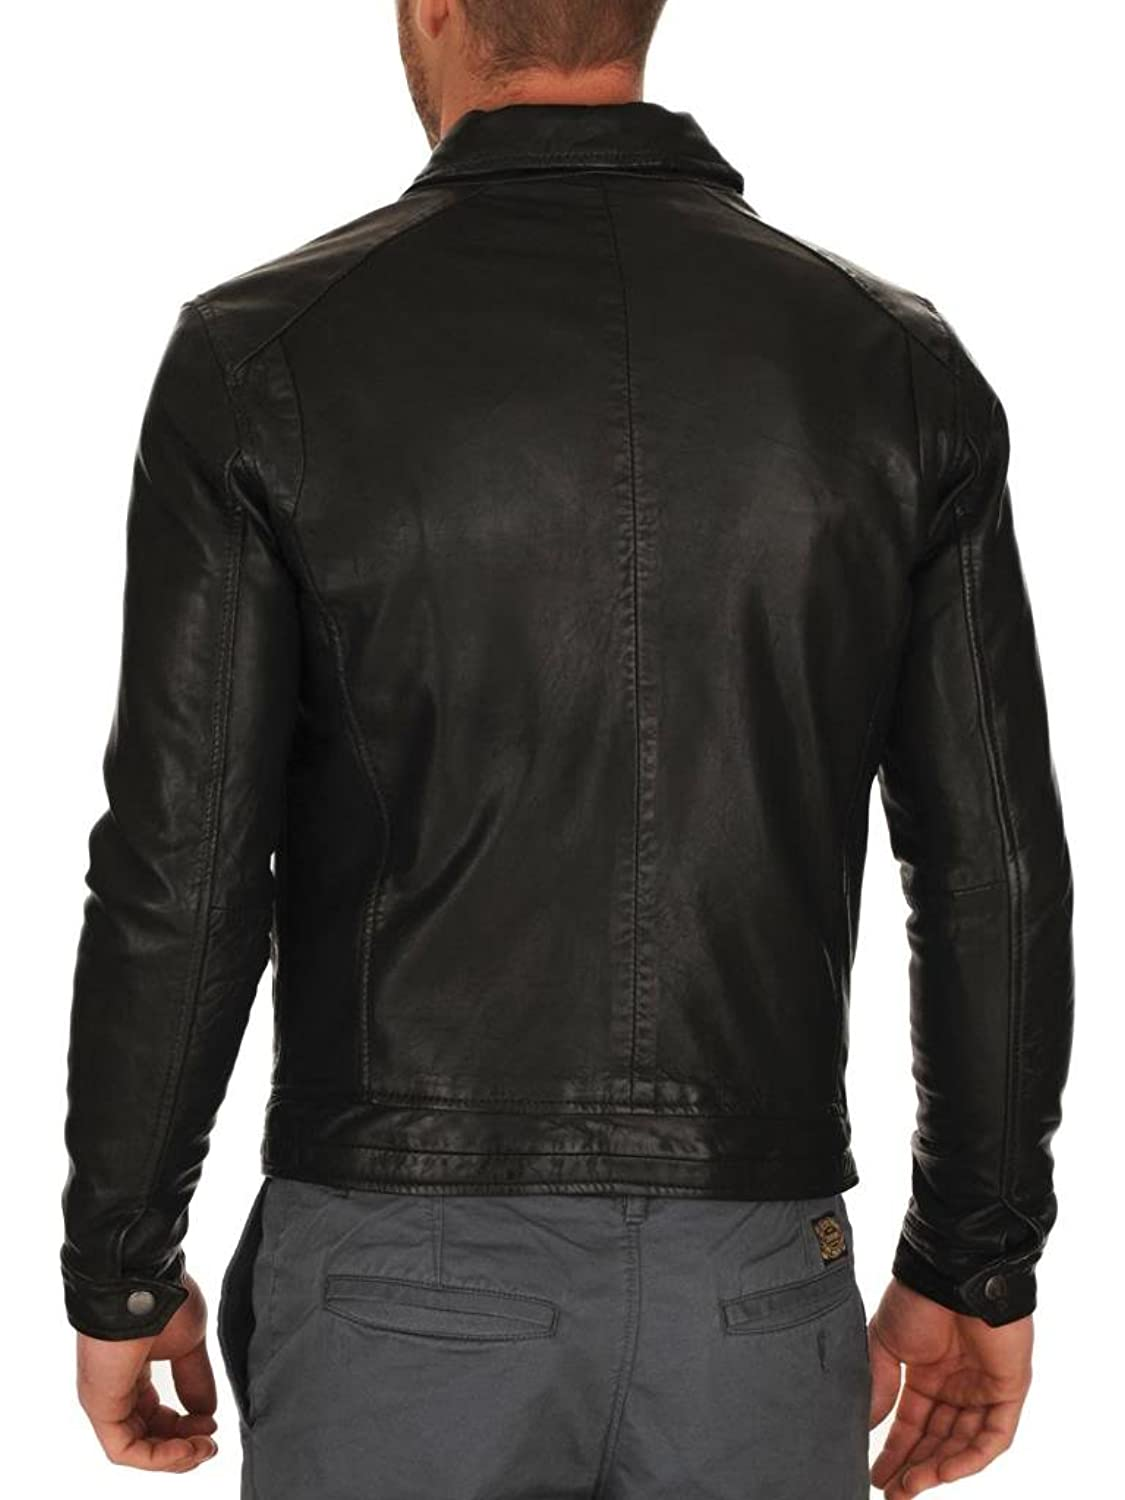 ABDys Men's Lambskin Leather jacket DKL706 Black